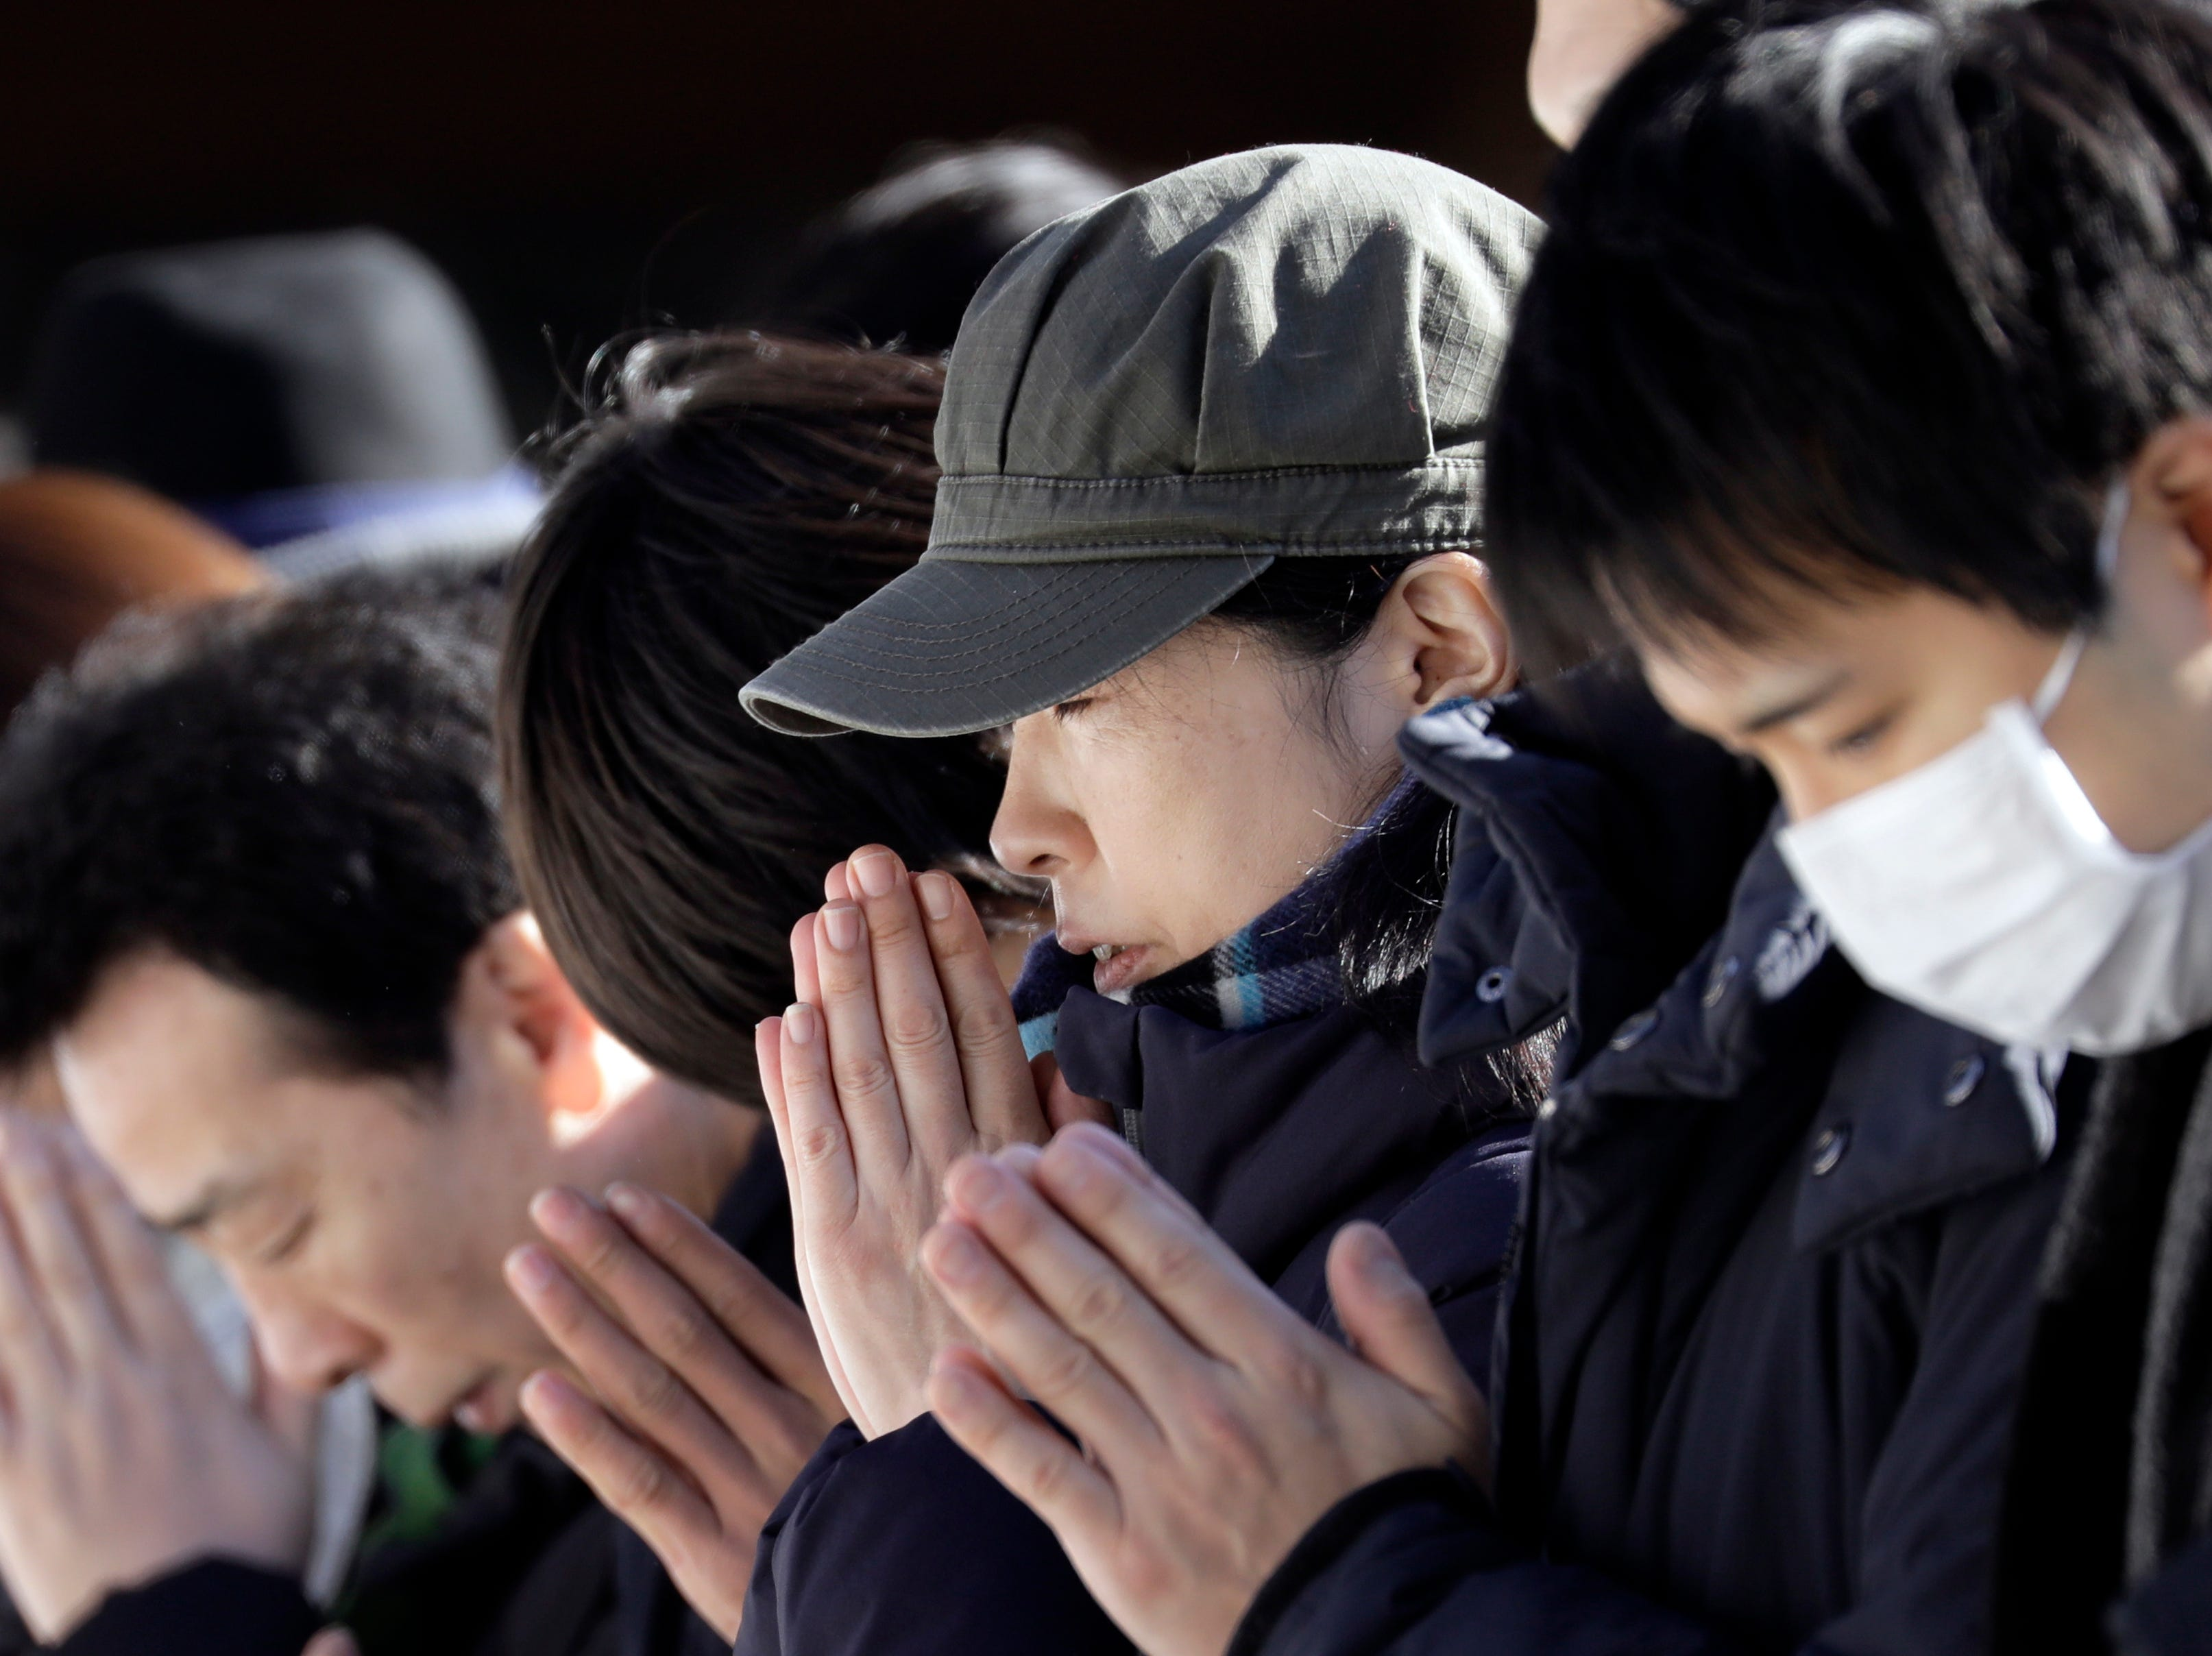 People offer prayers for the new year at Meiji Shrine in Tokyo, Japan on Jan. 1, 2019. More than three million people are expected to visit the shrine to pray for wishes to come true during the first three days of the New Year.